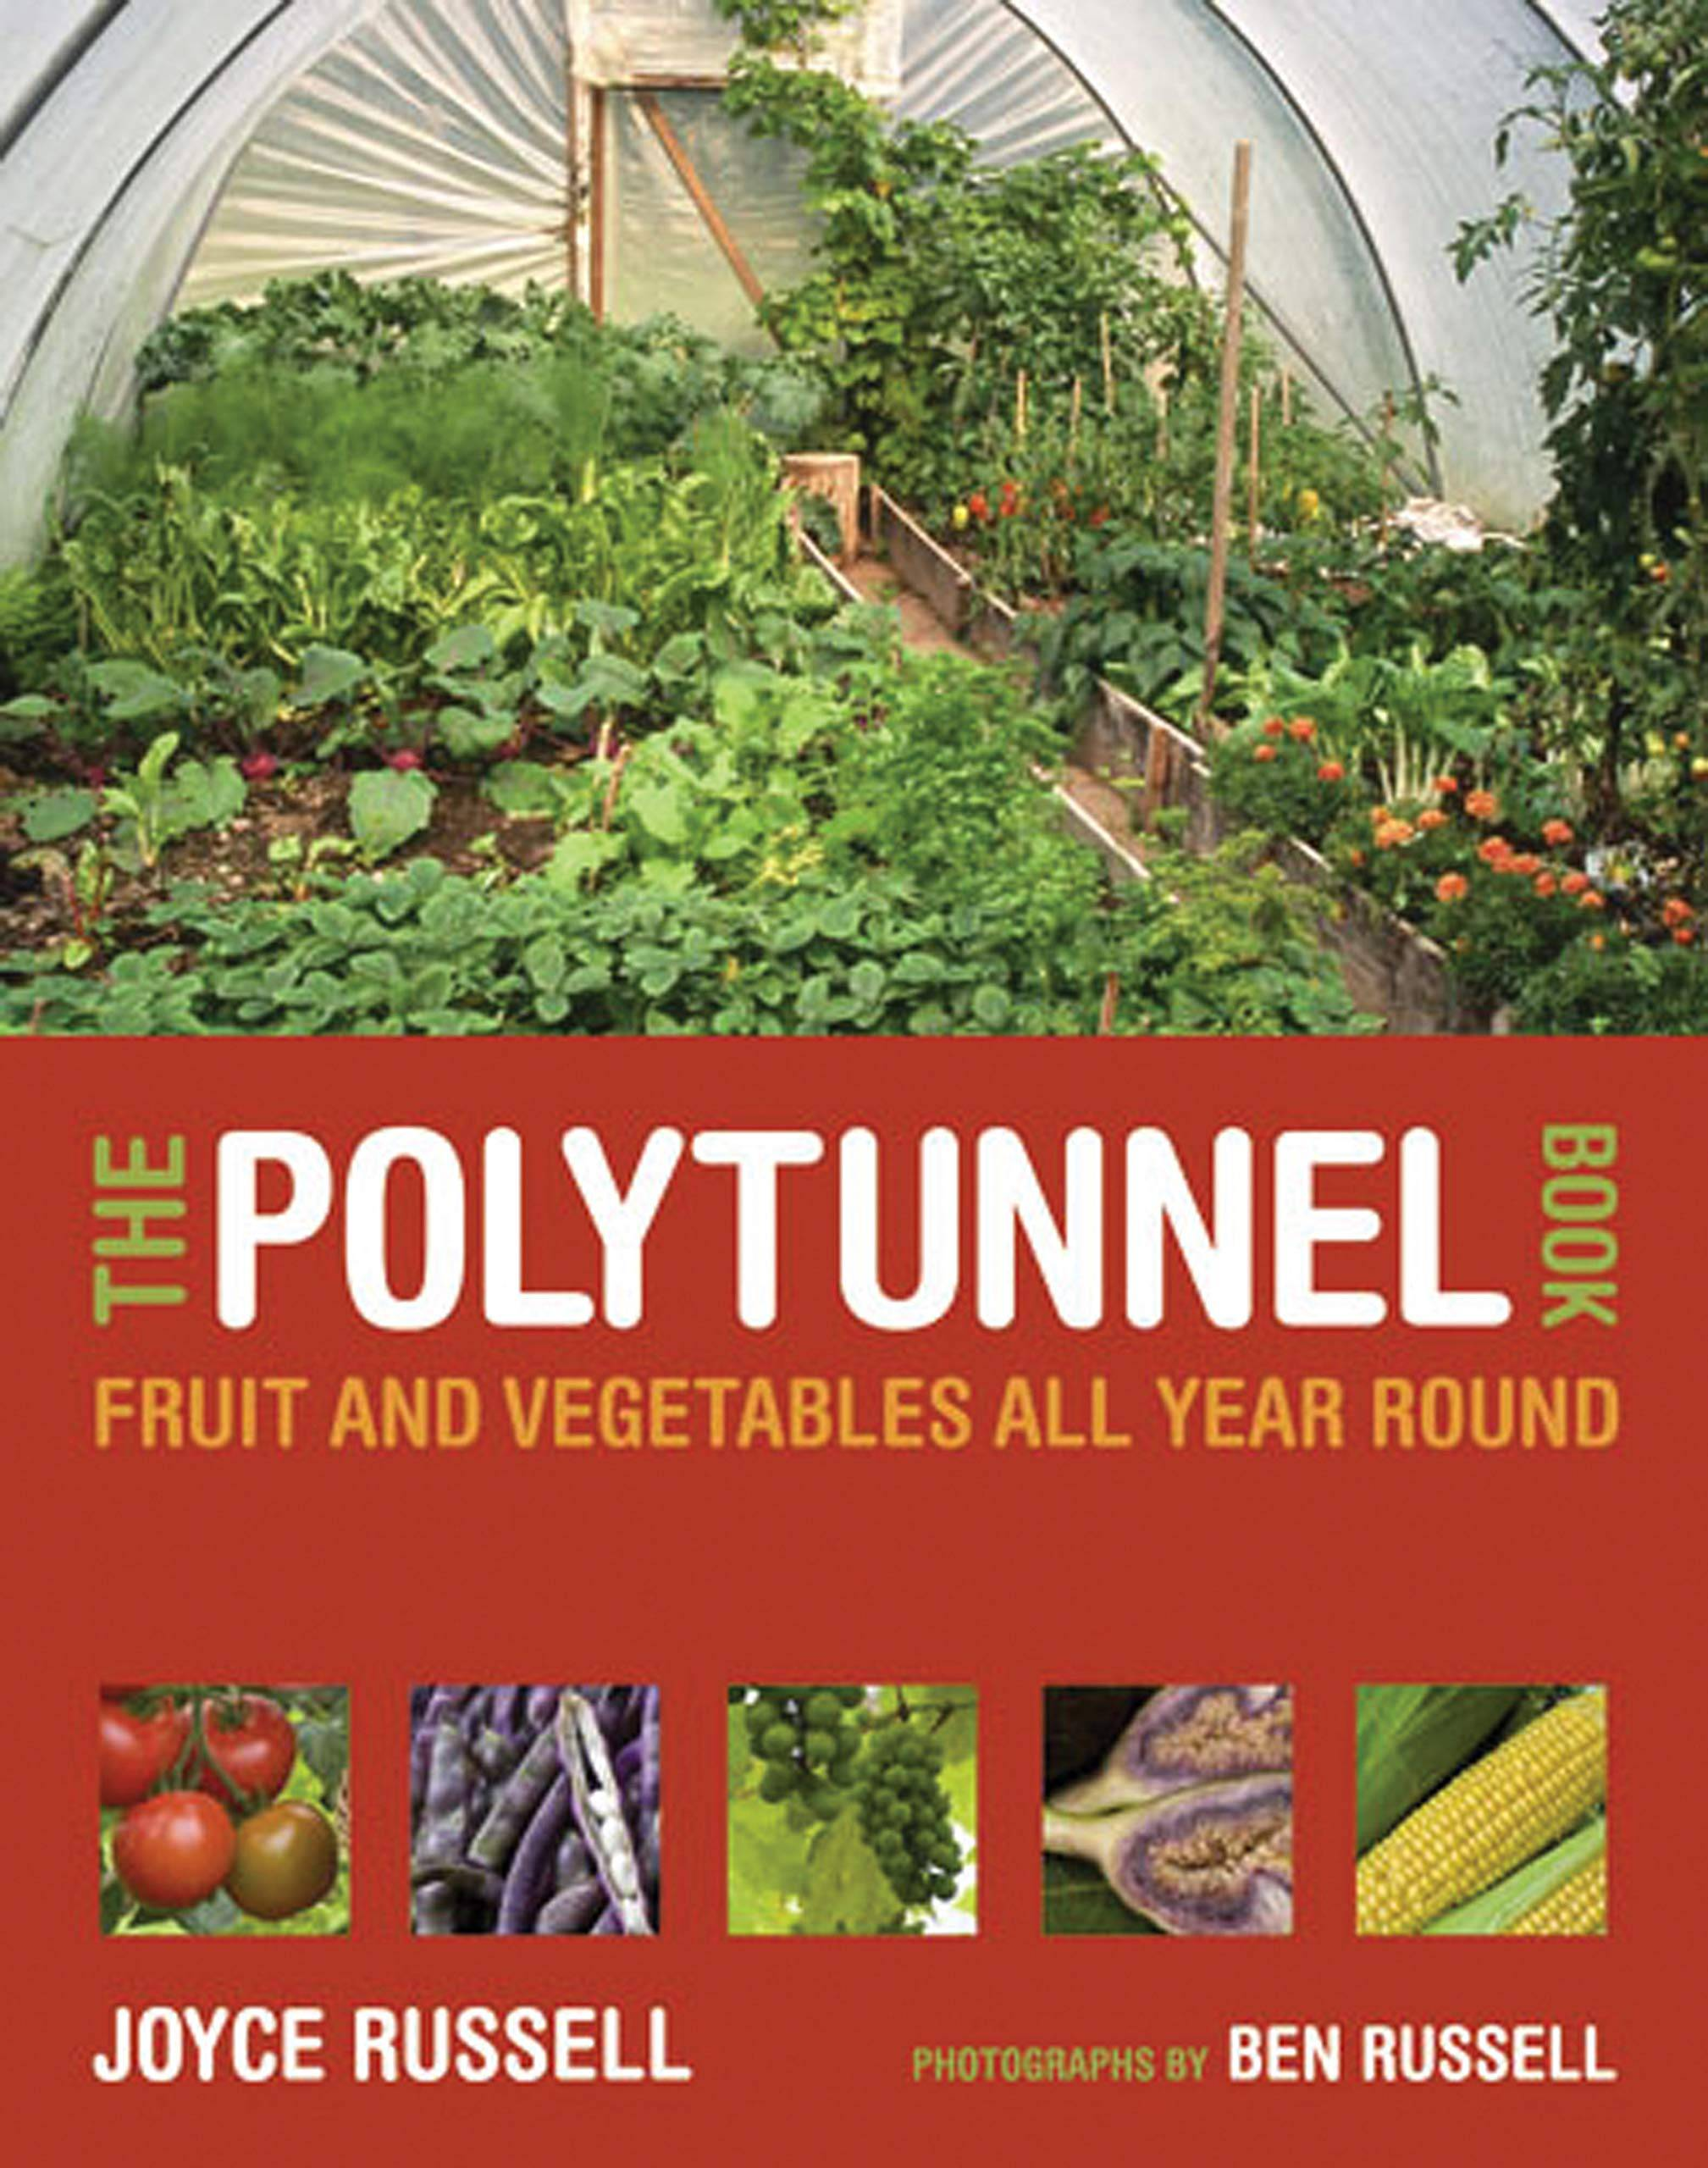 The polytunnel book by Joyce Russell & Ben Russell